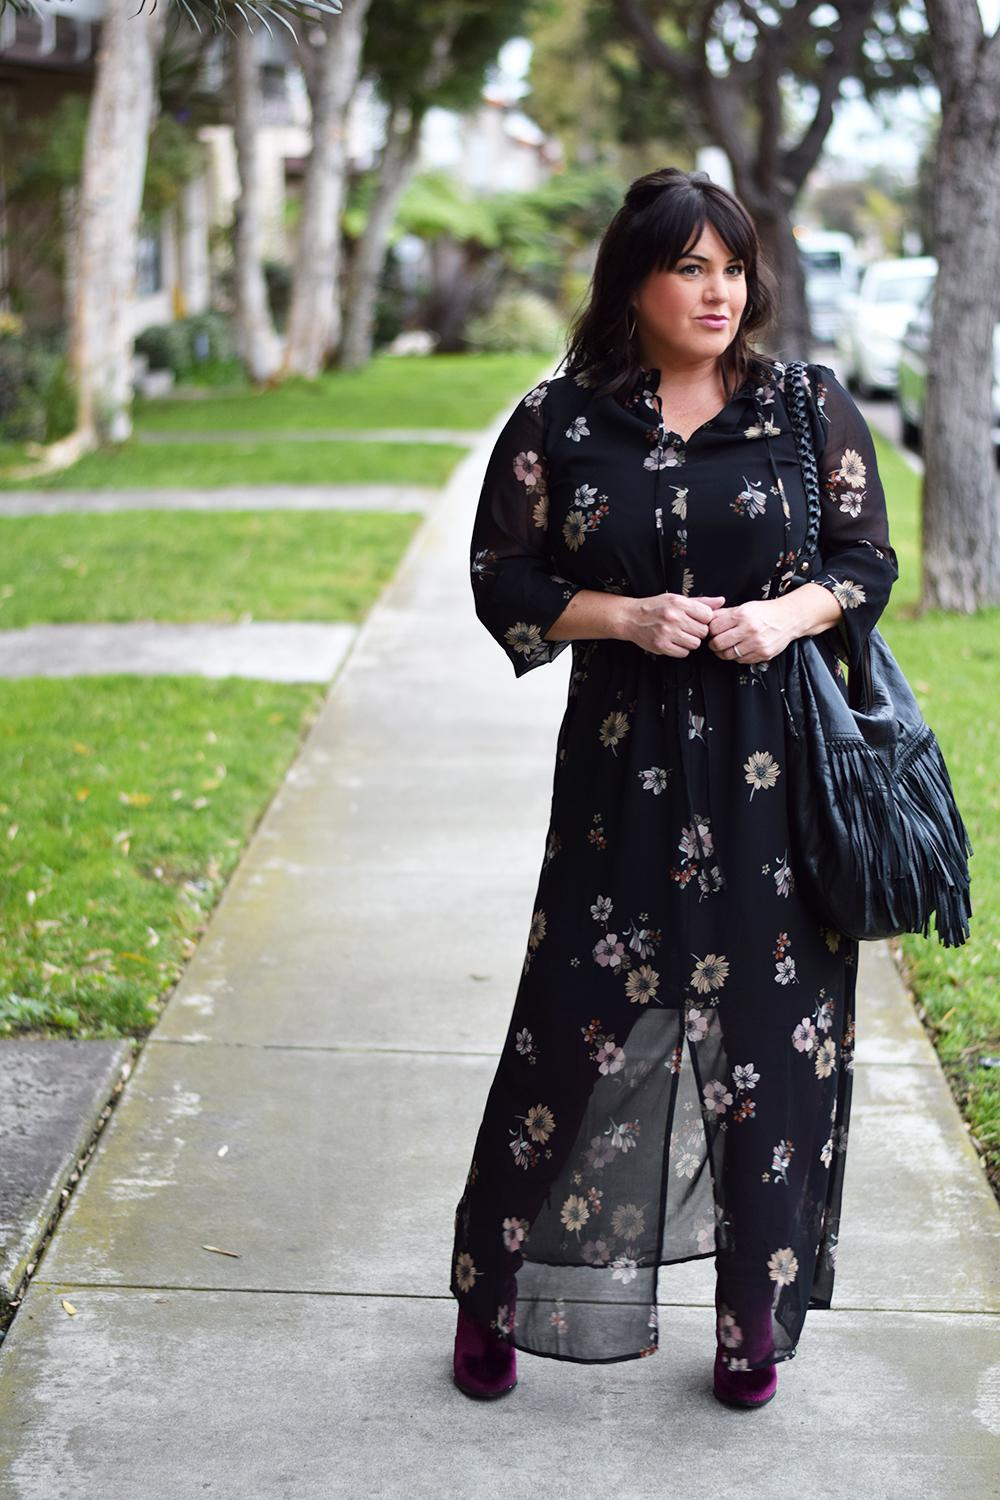 How-to-Wear-a-Floral-Maxi-Midi-Dress-in-Winter-Outfit-Barefoot-in-LA-Fashion-Blog-Style-Ideas-0106